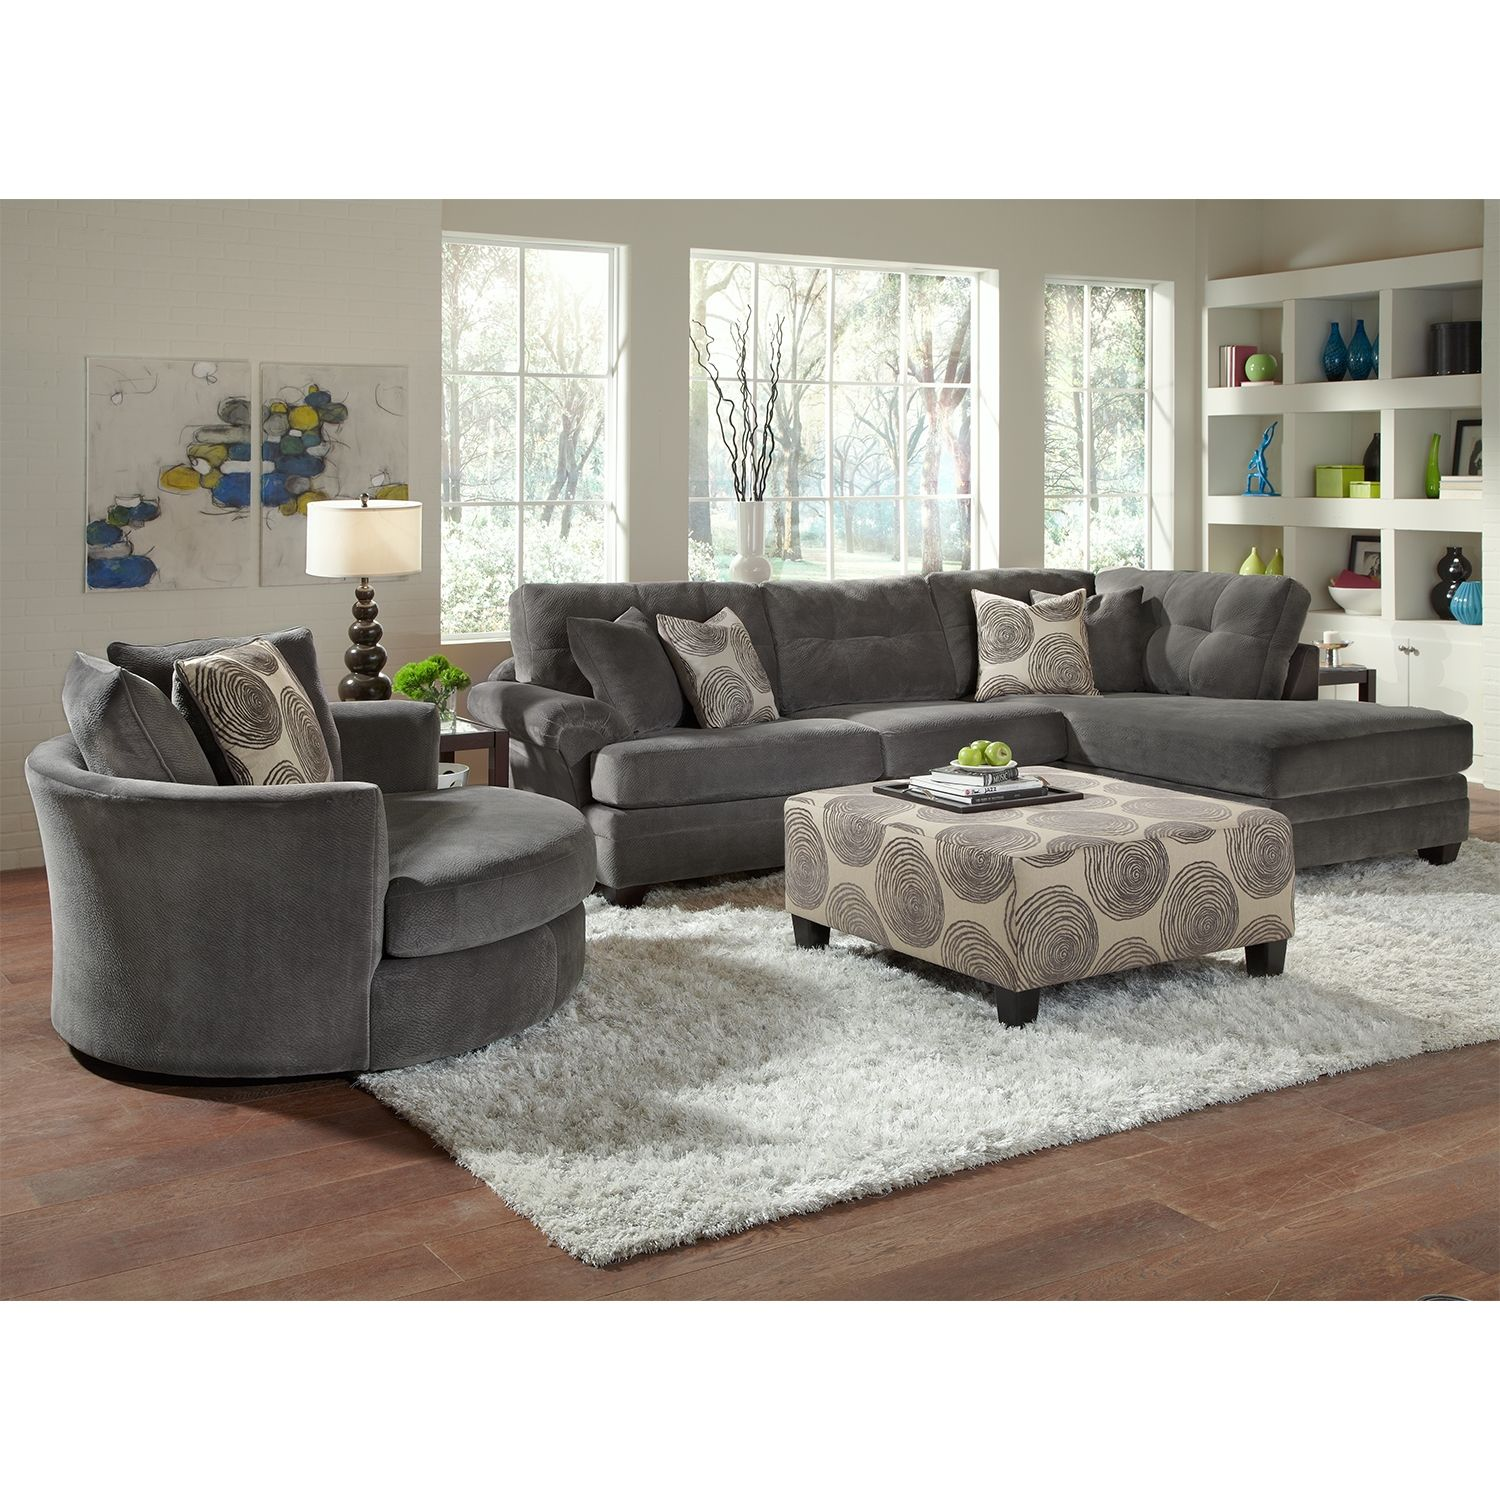 Catalina Gray Upholstery Pc Sectional Furniturecom Home - American signature sofas